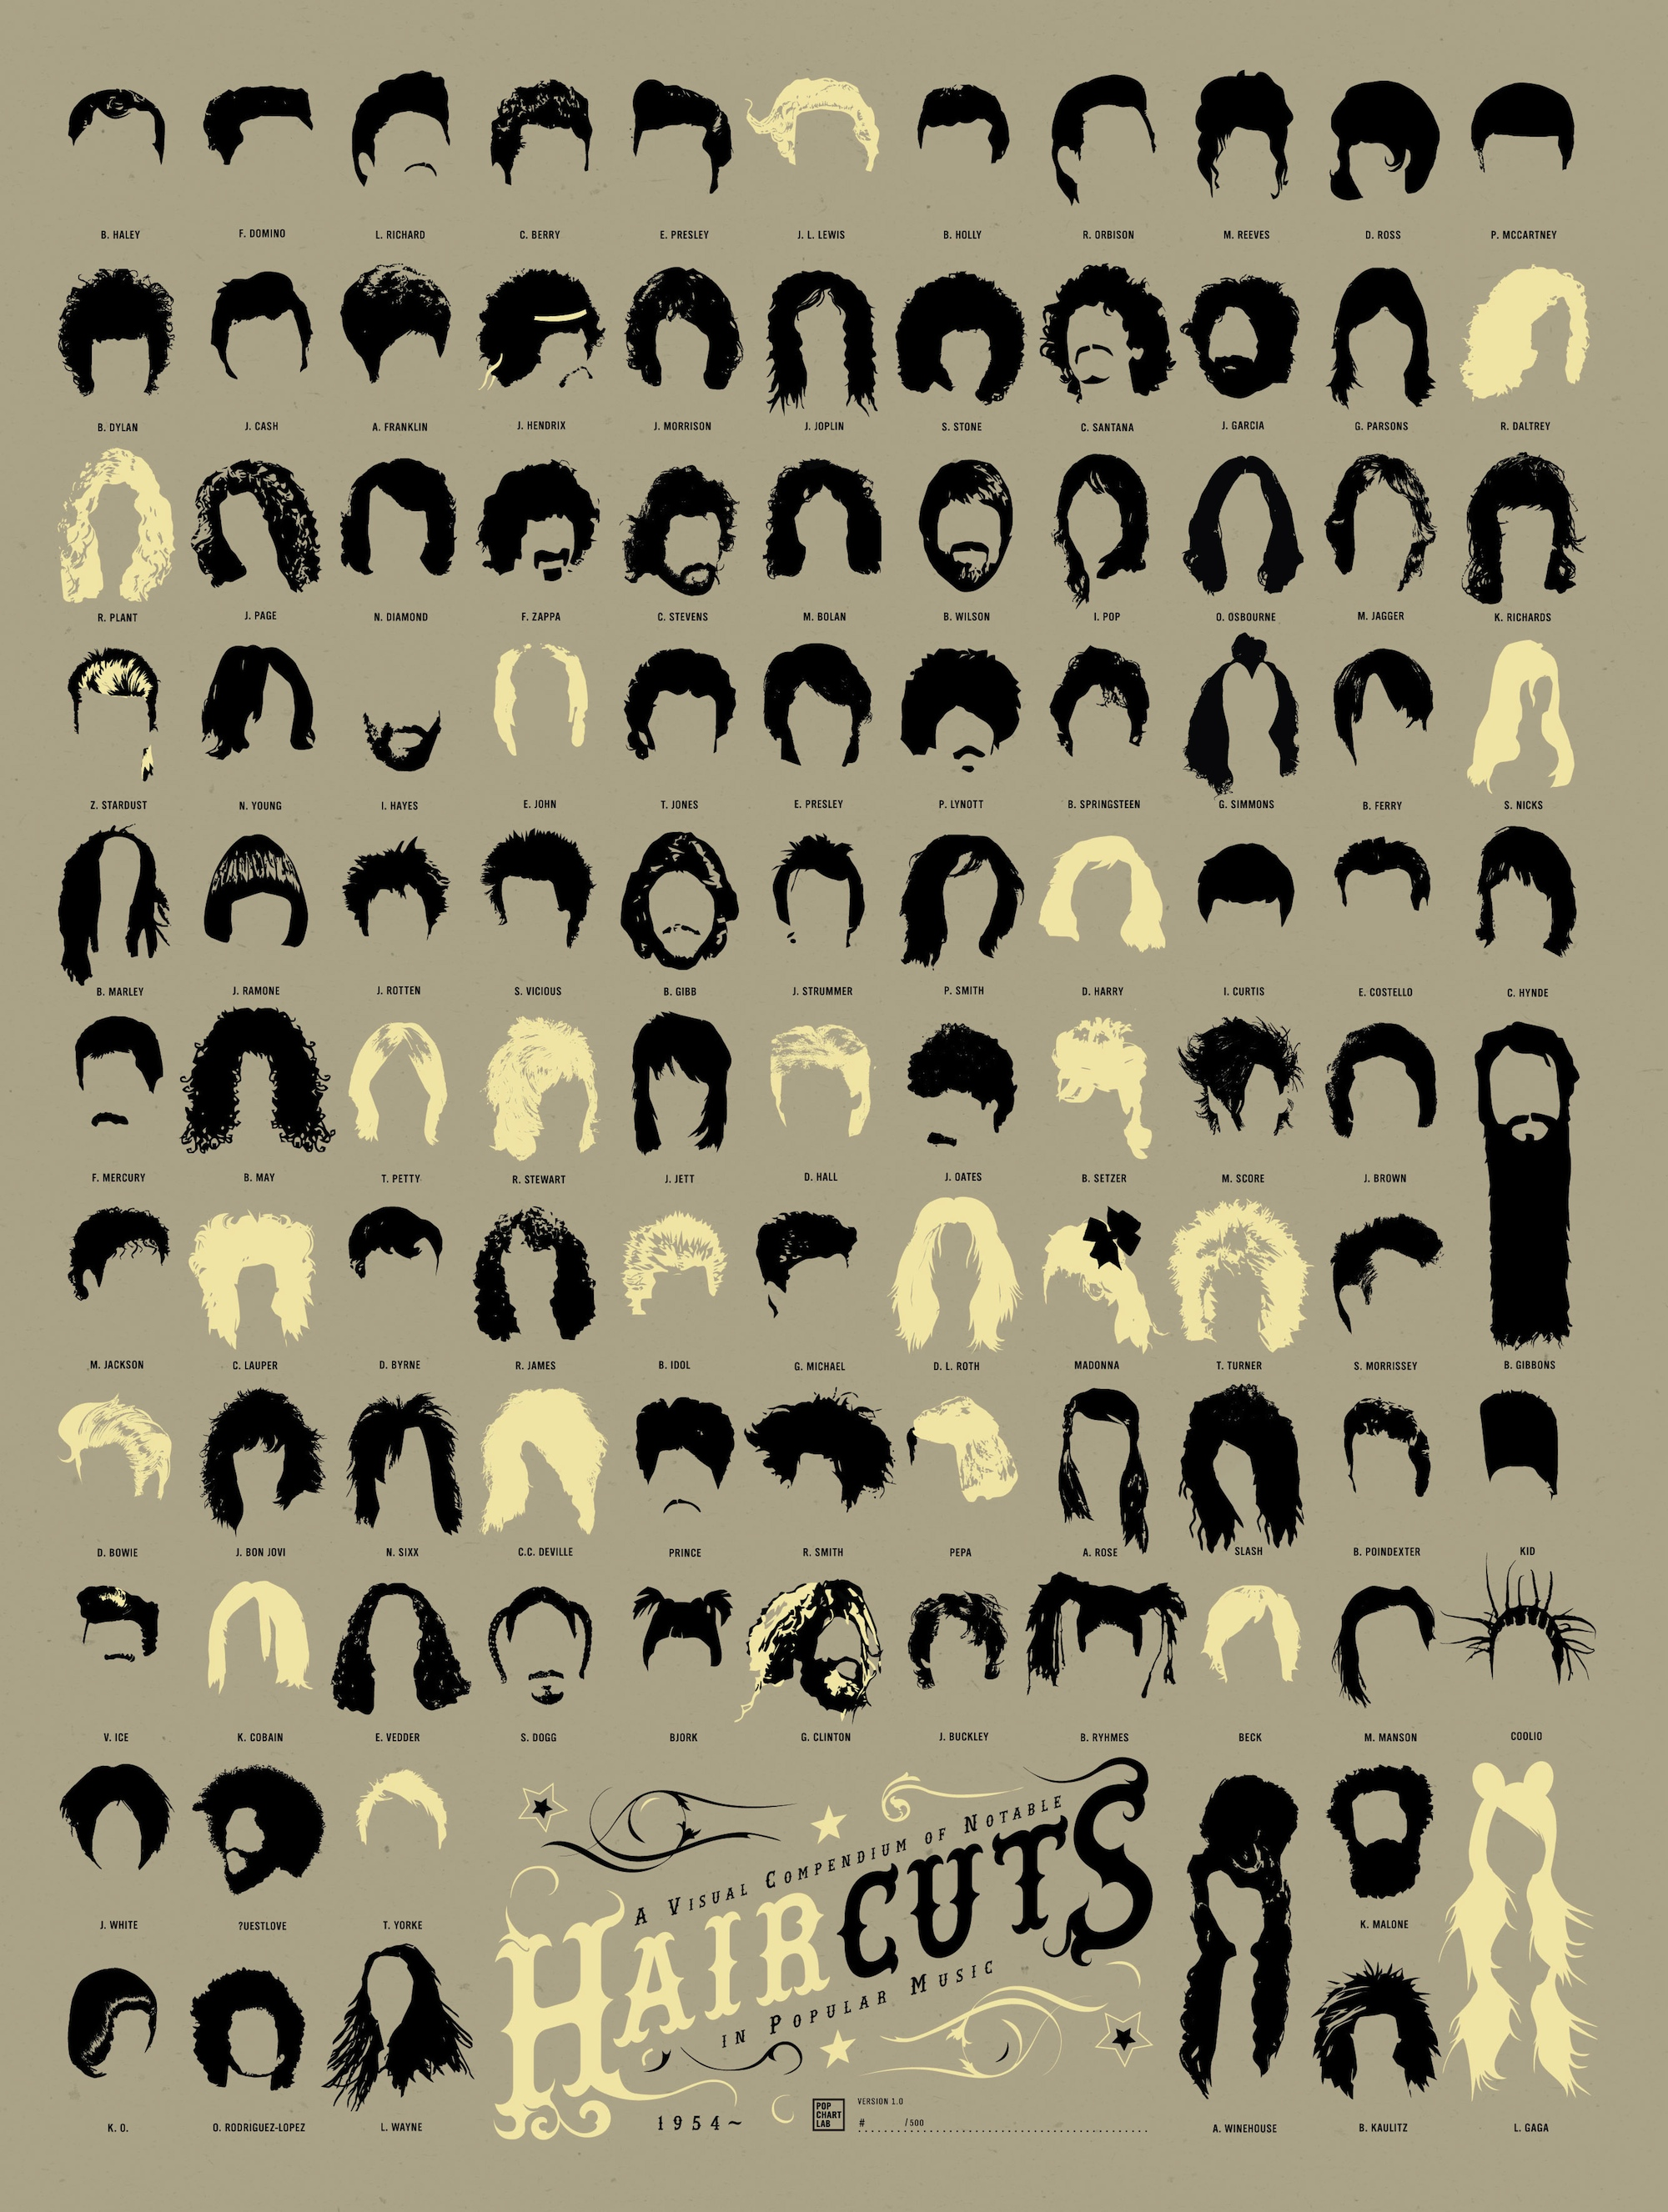 What are the names of haircuts